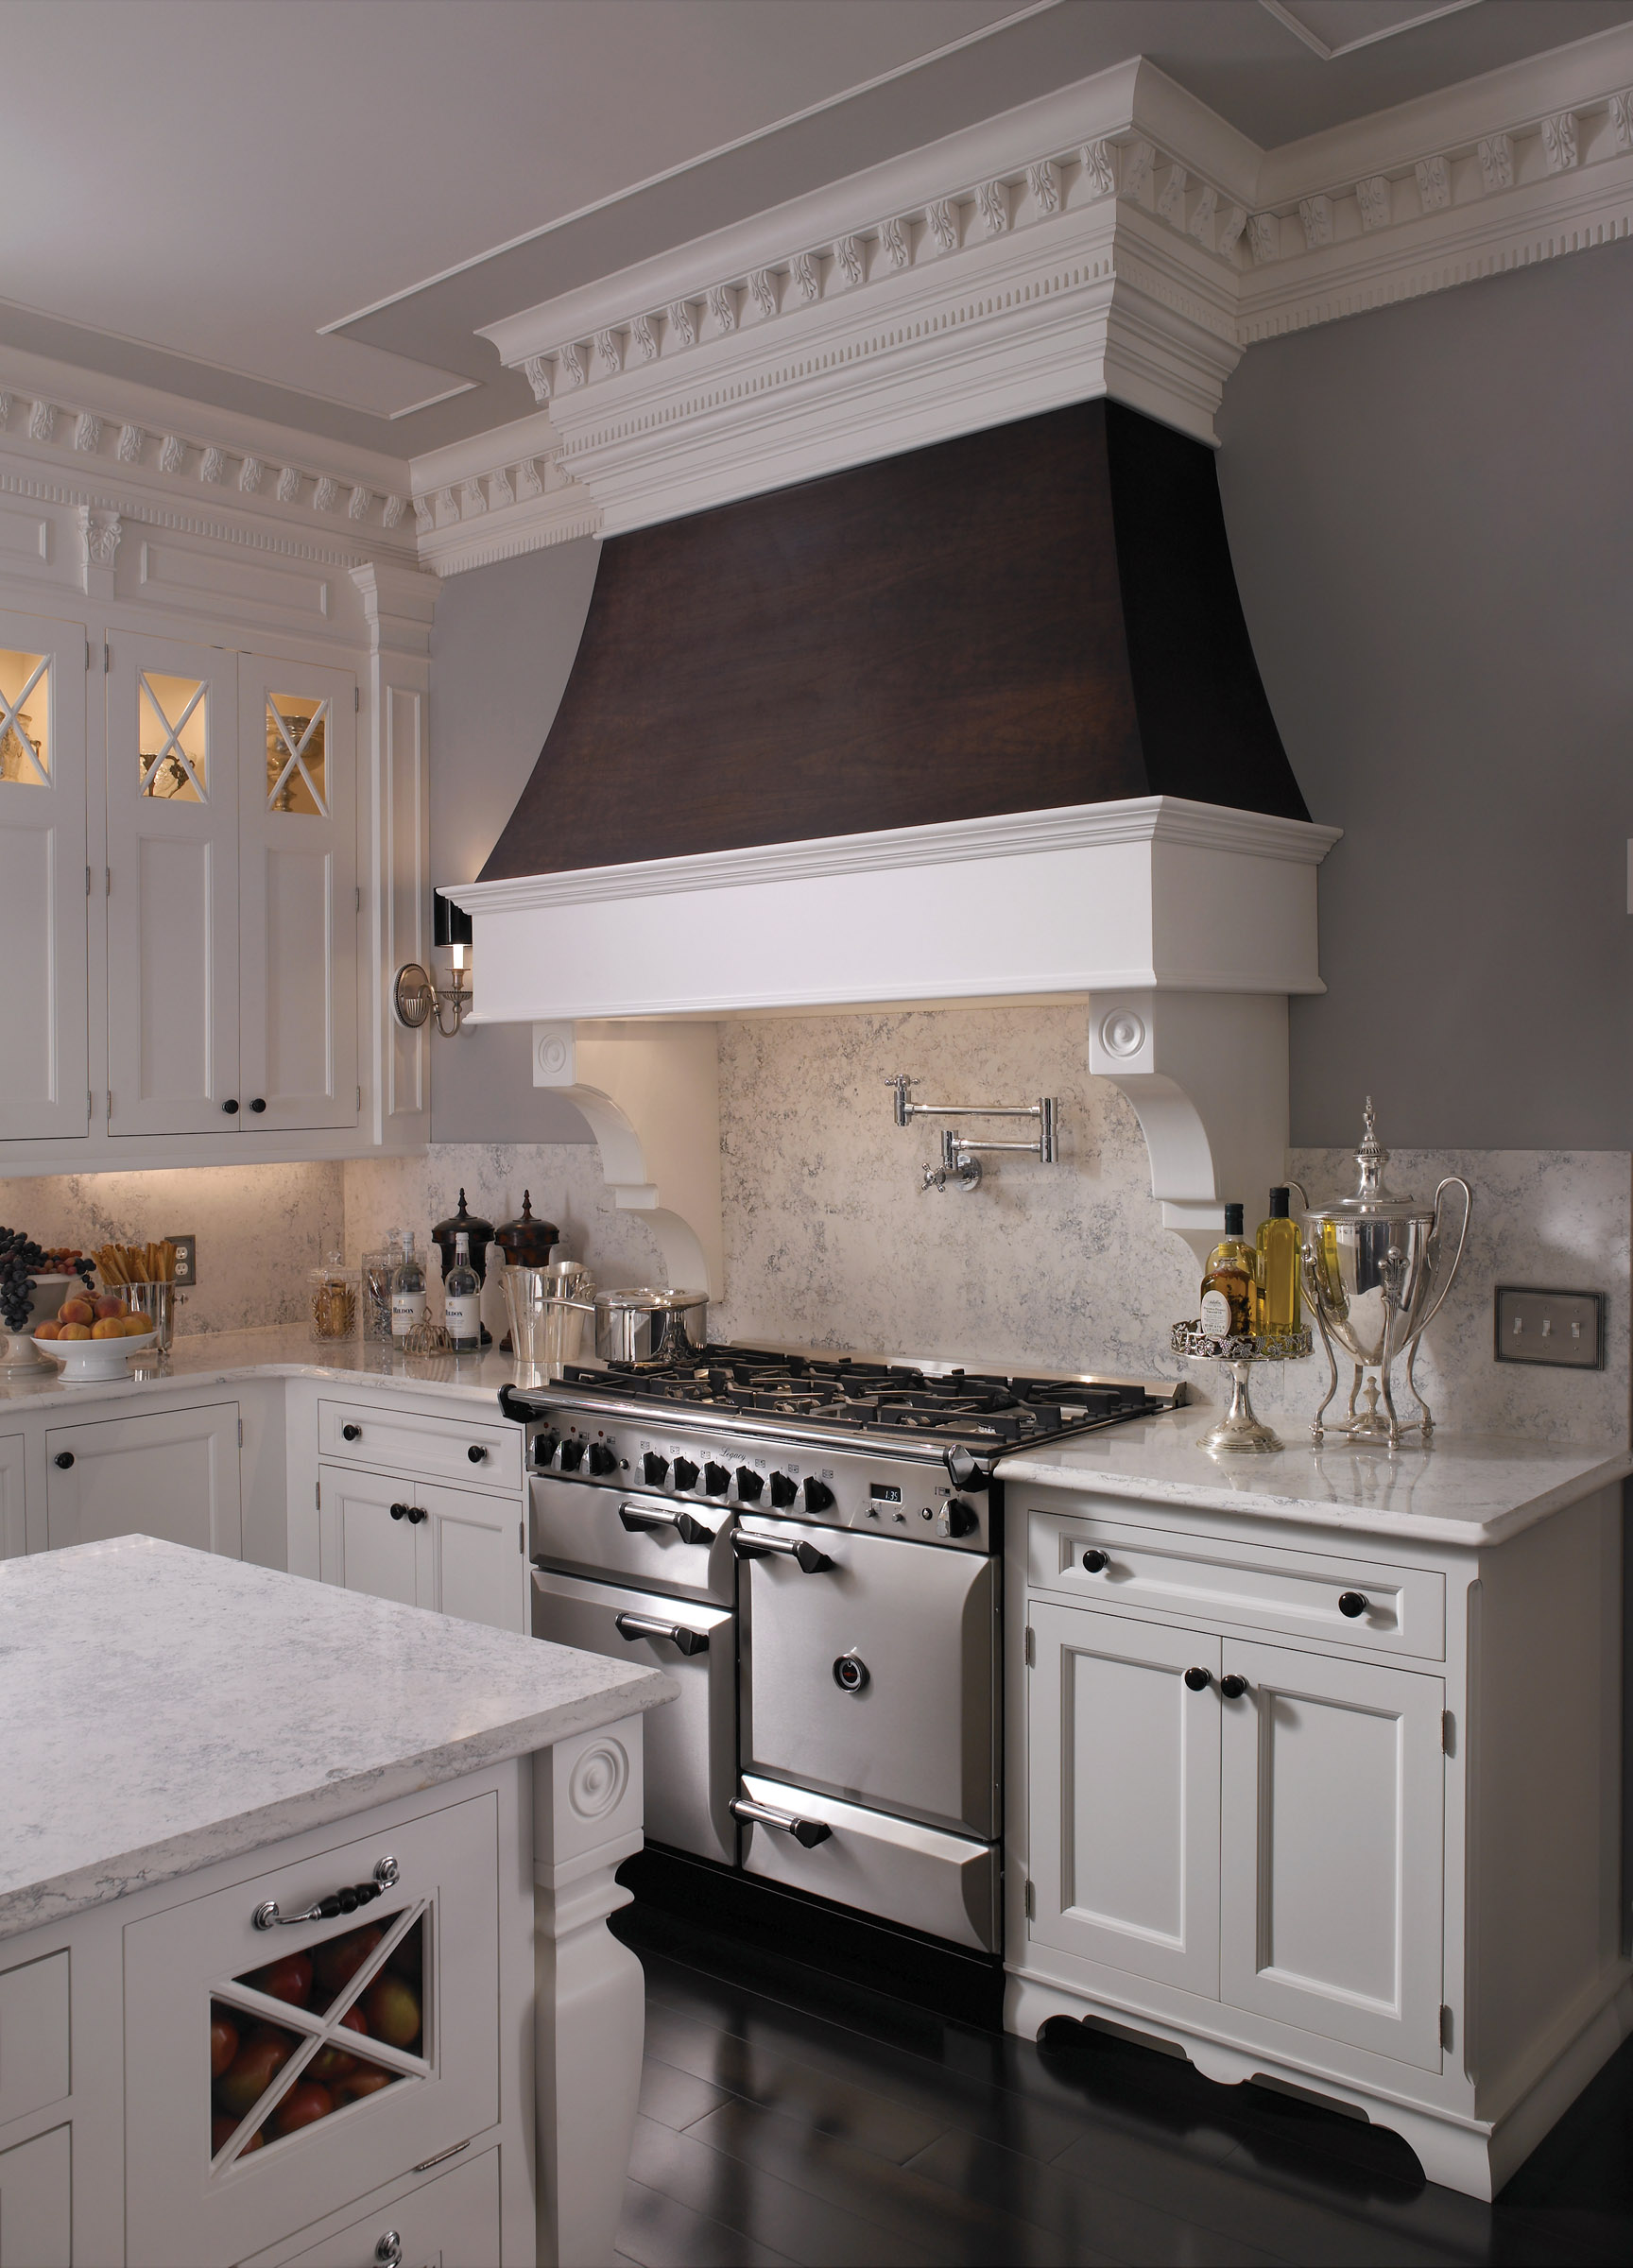 Traditional & Transitional Kitchen Designs | Cabinetry Designs